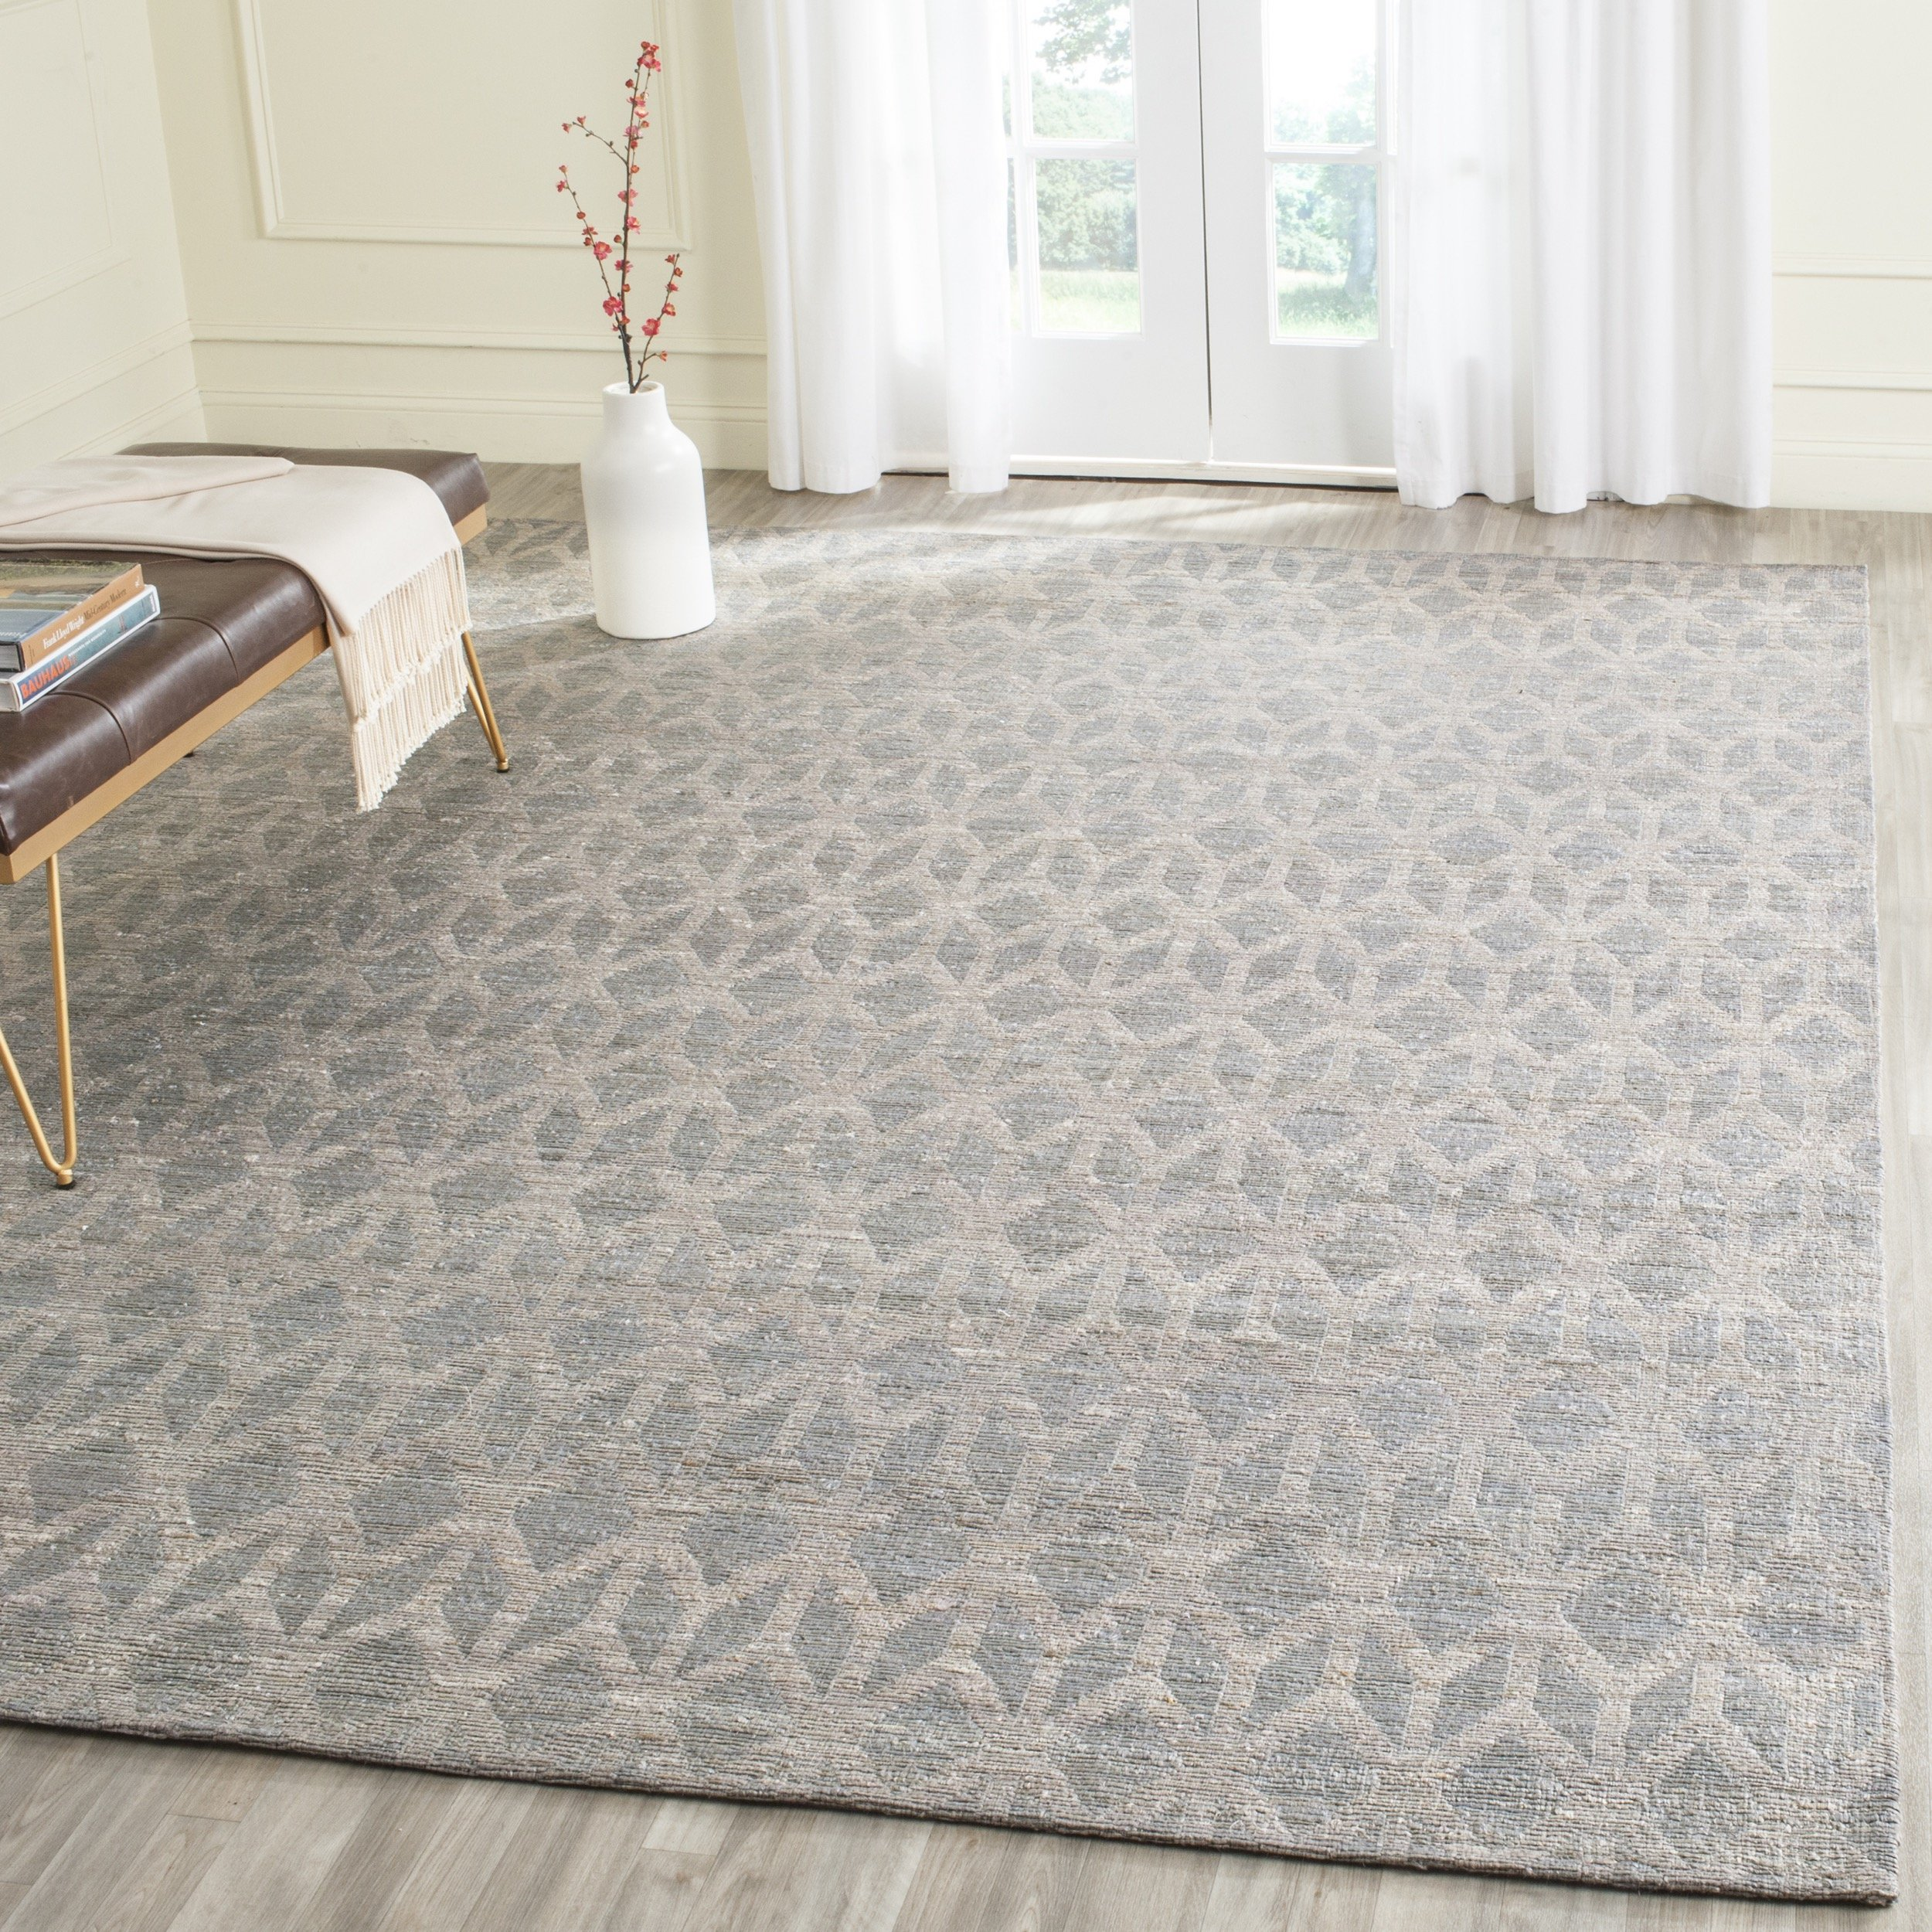 Safavieh Cape Cod Collection CAP415A Hand Woven Geometric Grey and Gold Jute and Cotton Area Rug (6' x 9') by Safavieh